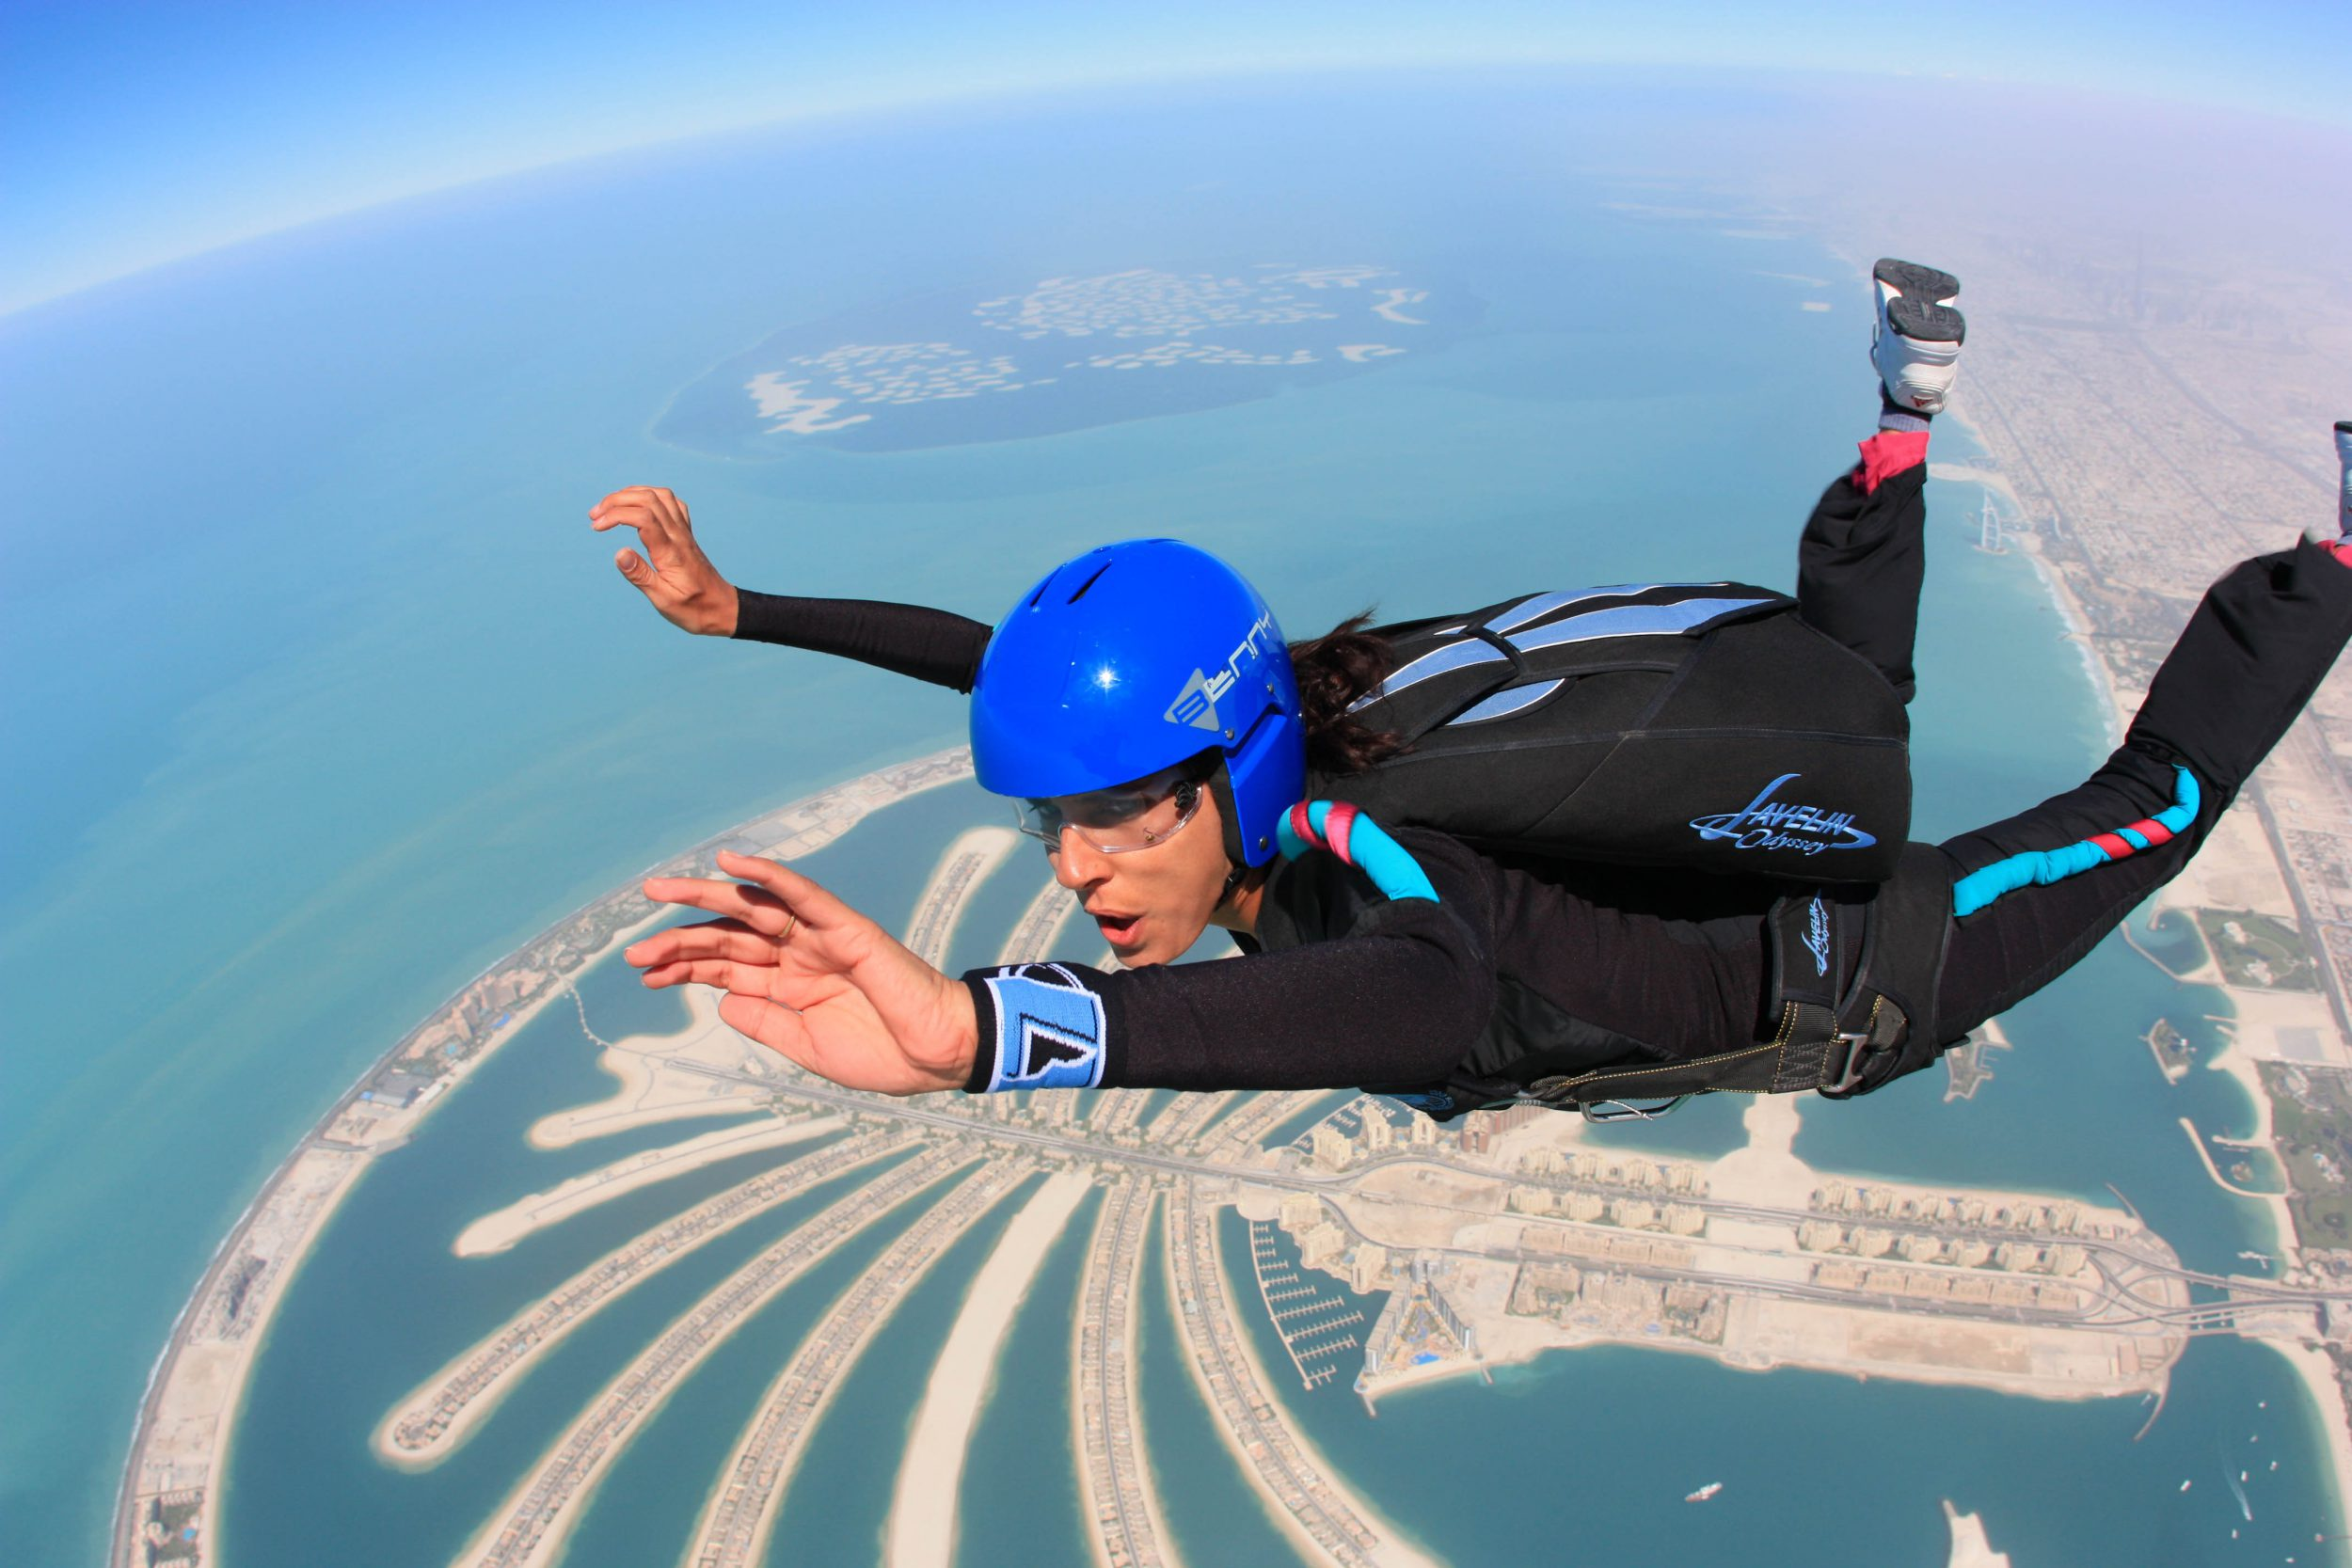 Skydiving in Dubai.